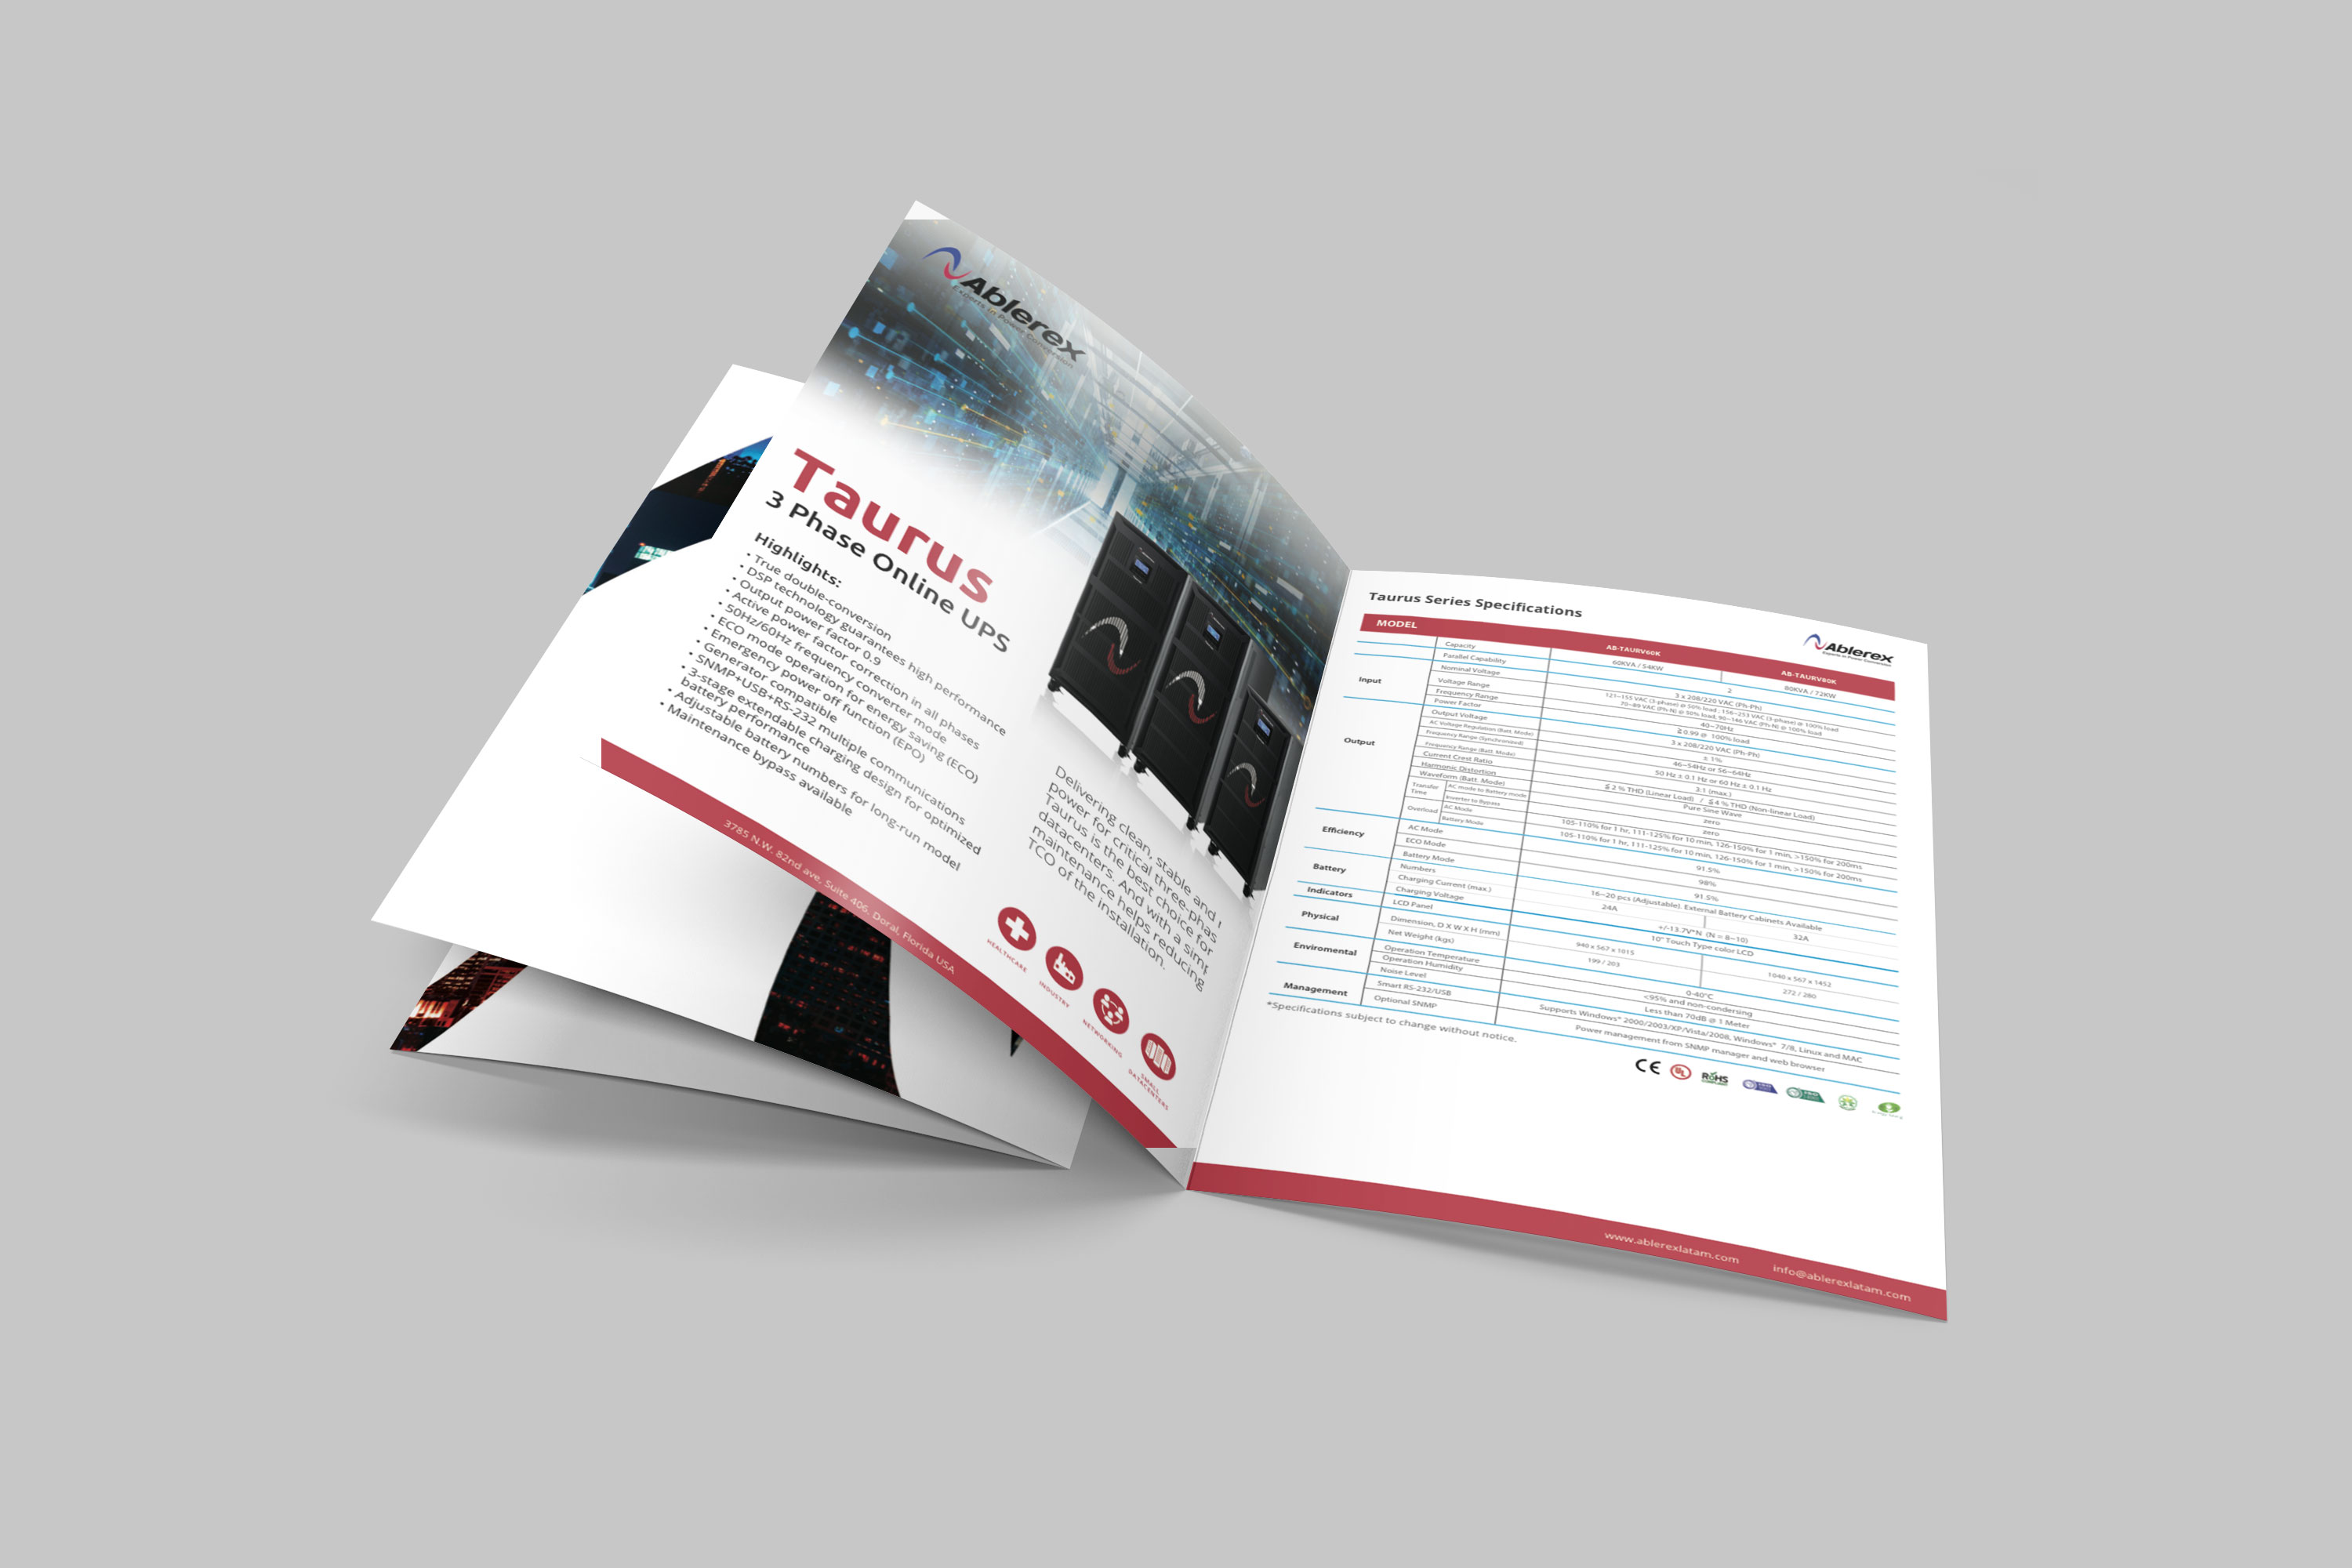 Ablerex catalog design